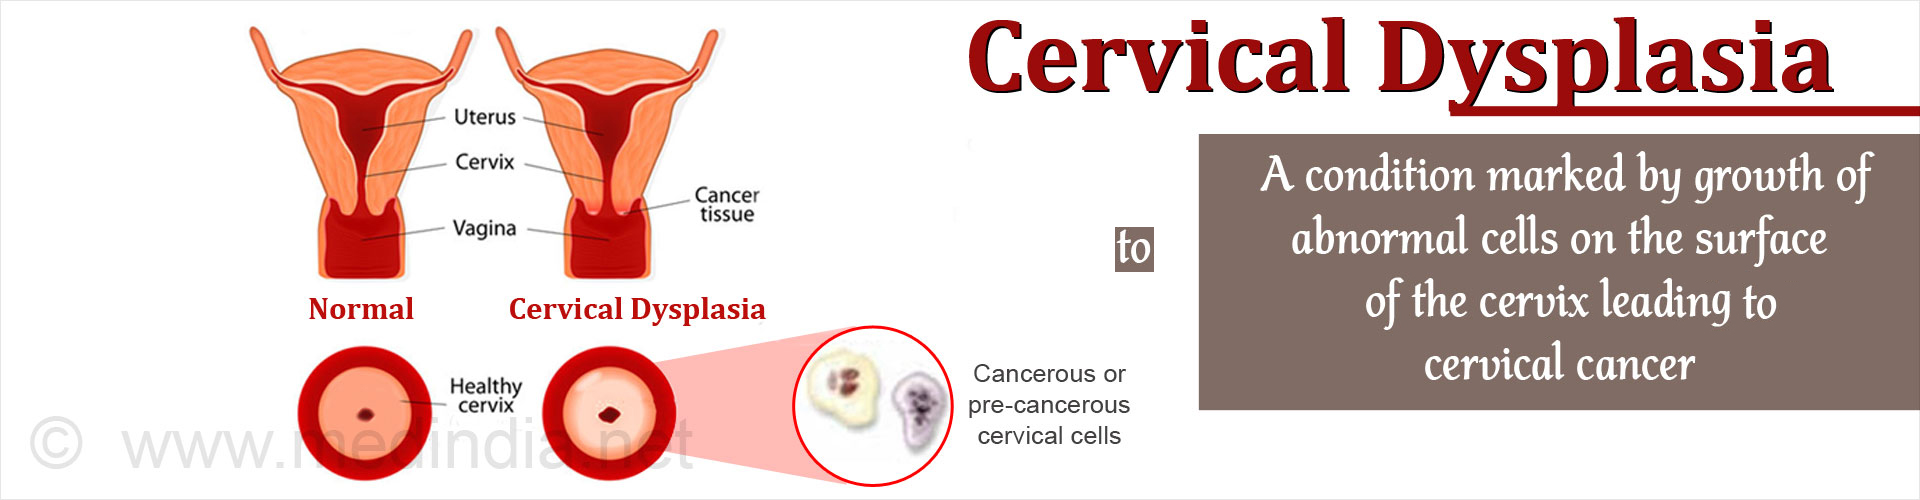 Cervical Dysplasia - A condition marked by growth of abnormal cells on the surface of the cervix leads to cervical cancer